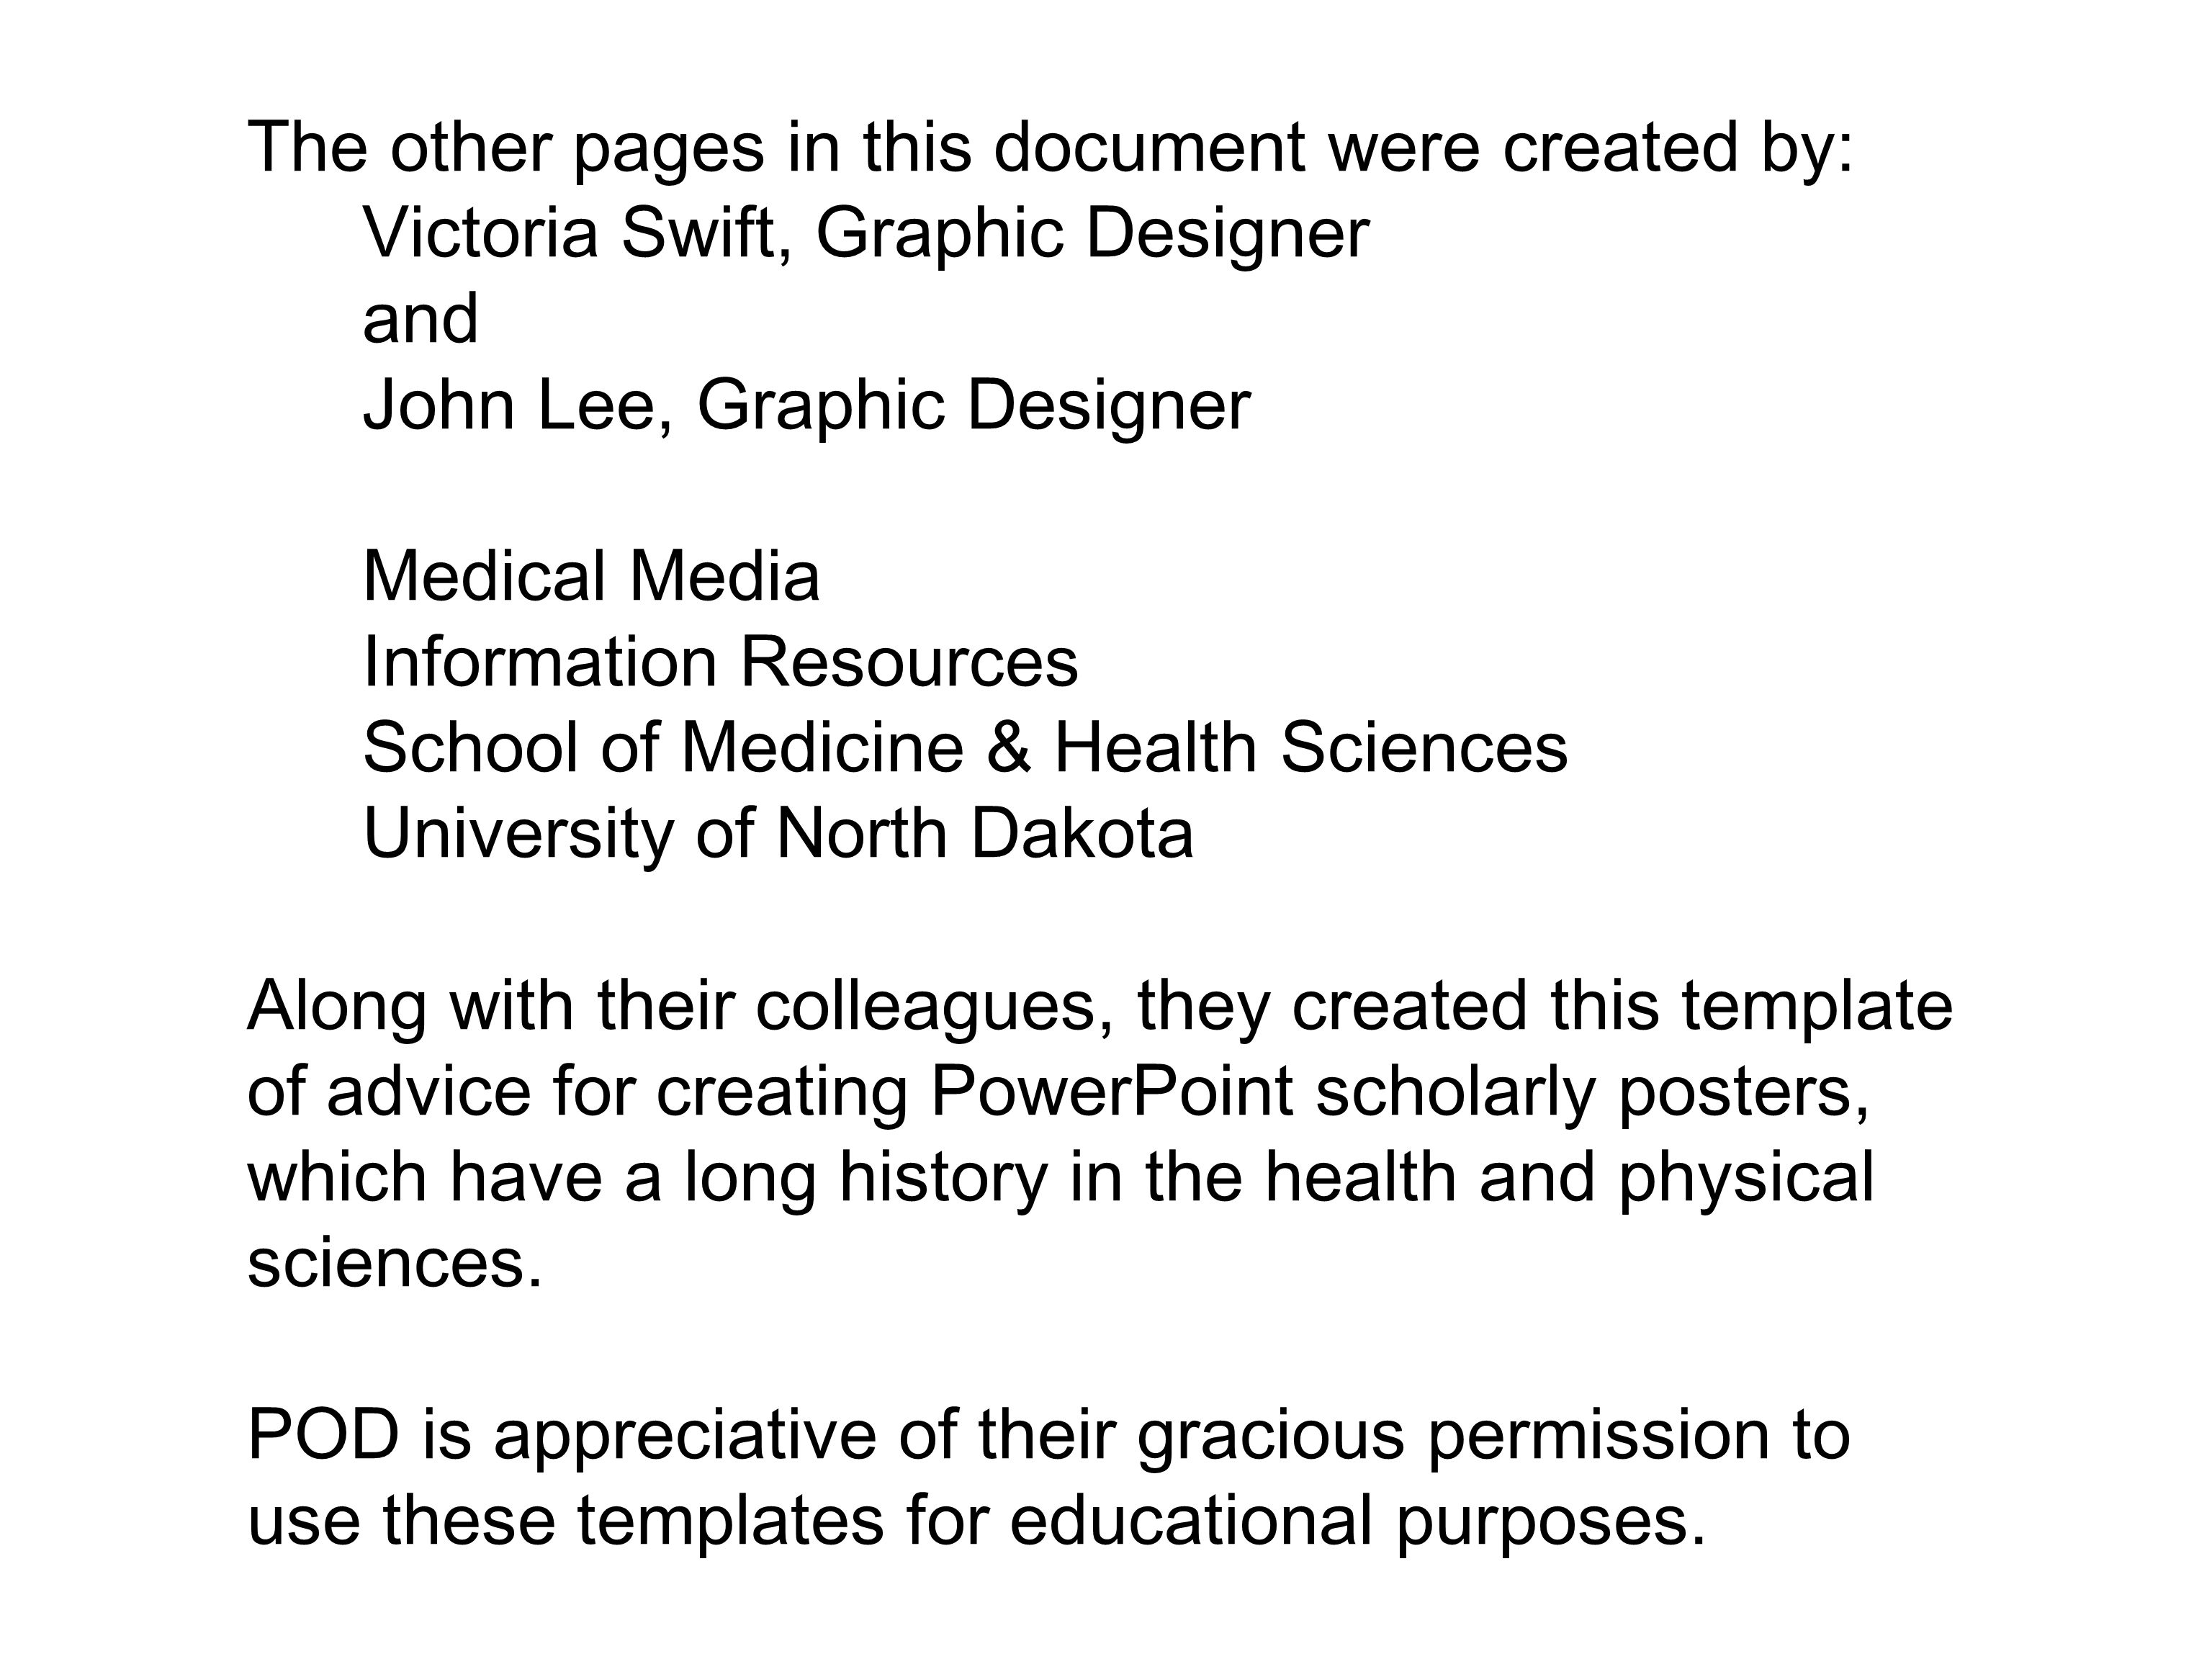 The other pages in this document were created by: Victoria Swift, Graphic Designer and John Lee, Graphic Designer Medical Media Information Resources School of Medicine & Health Sciences University of North Dakota Along with their colleagues, they created this template of advice for creating PowerPoint scholarly posters, which have a long history in the health and physical sciences.